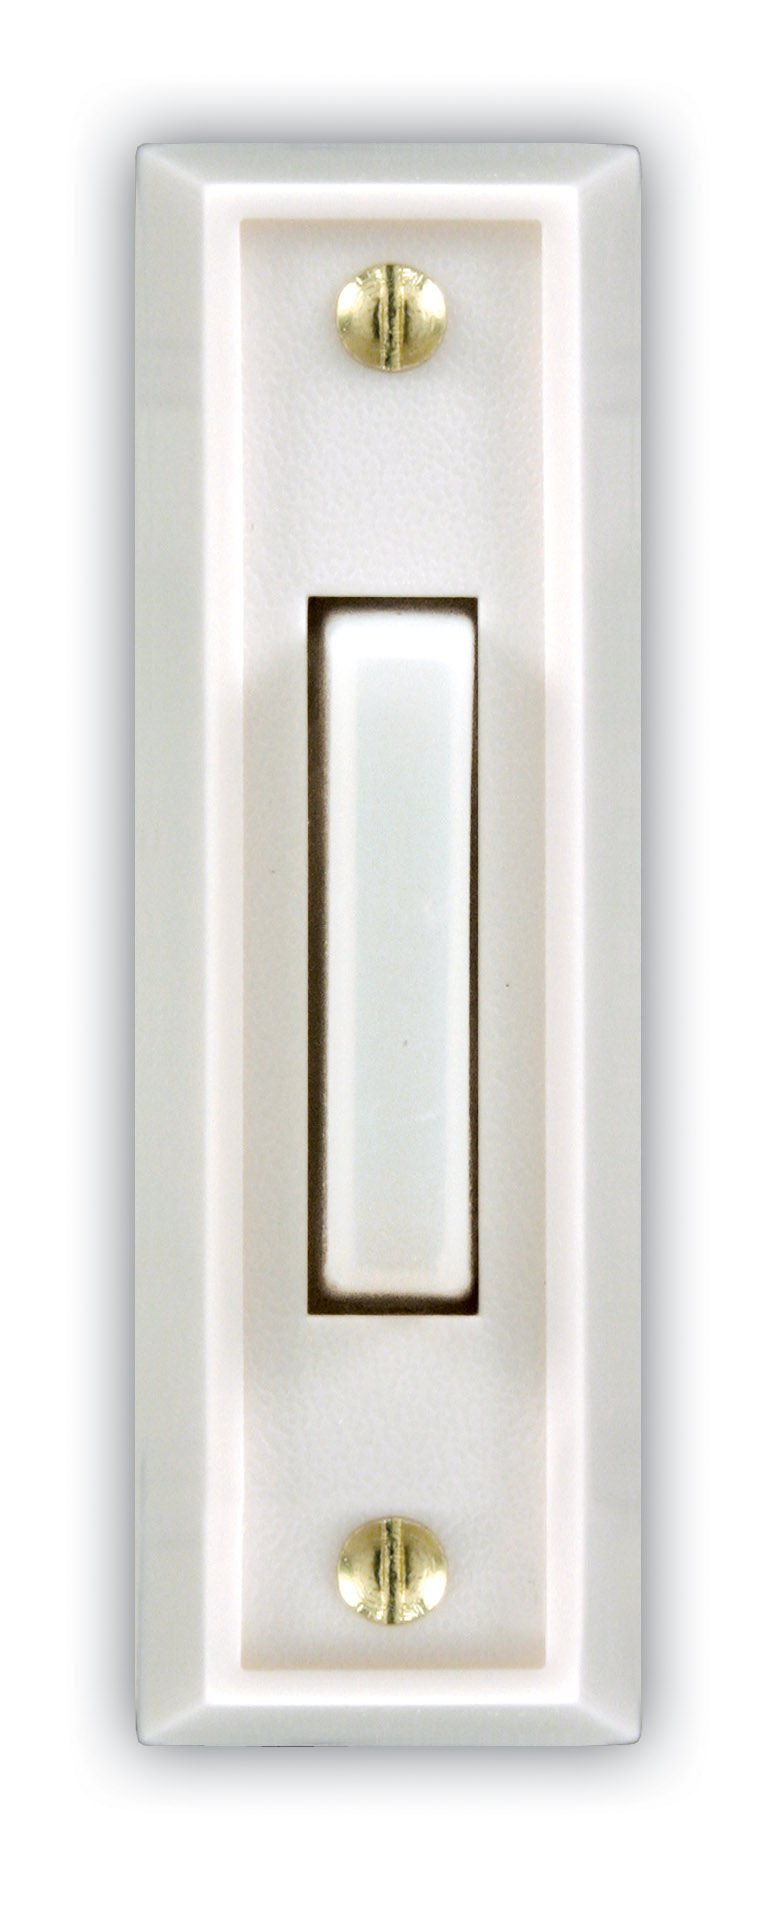 Cheap Wired Push Button Find Deals On Line At Wiring Doorbell Chime Get Quotations Heath Zenith Sl 715 1 02 Door White